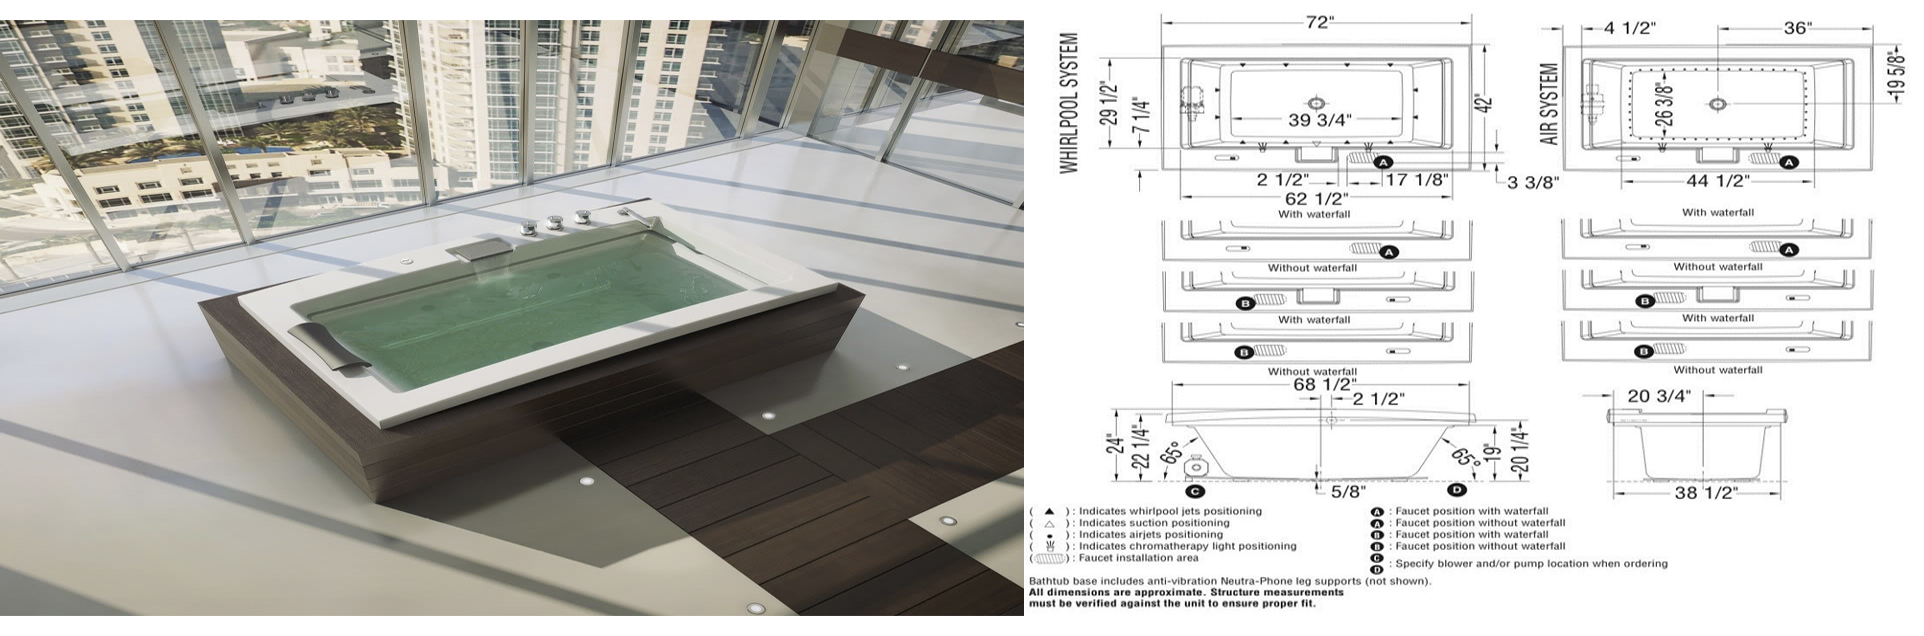 Technical Details Of Surf Hydromassage Bathtub; Details Drawings For  Fontana Luxury Digital Built In Thermostatic Mixing Valve LCD Screen Shower  Mixer